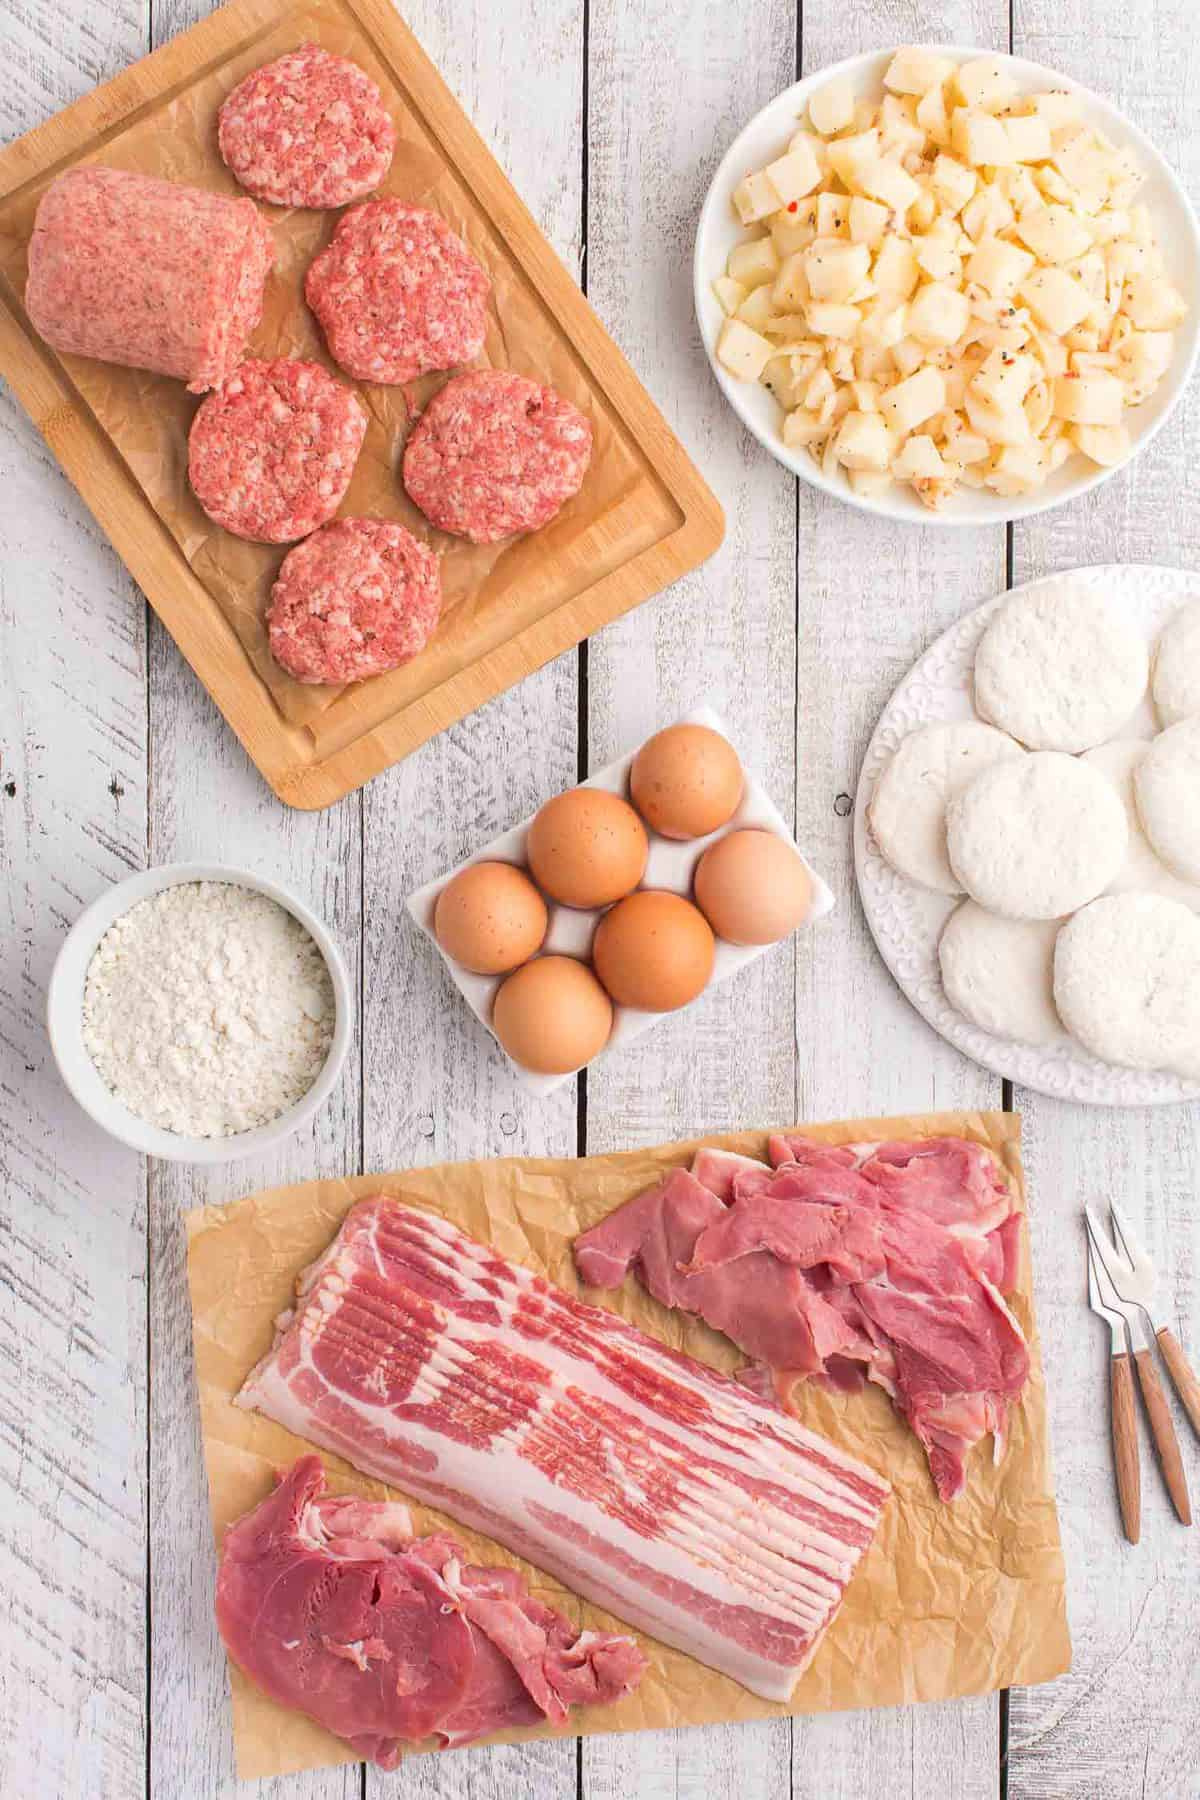 Assorted ingredients needed to make a father's day breakfast board.